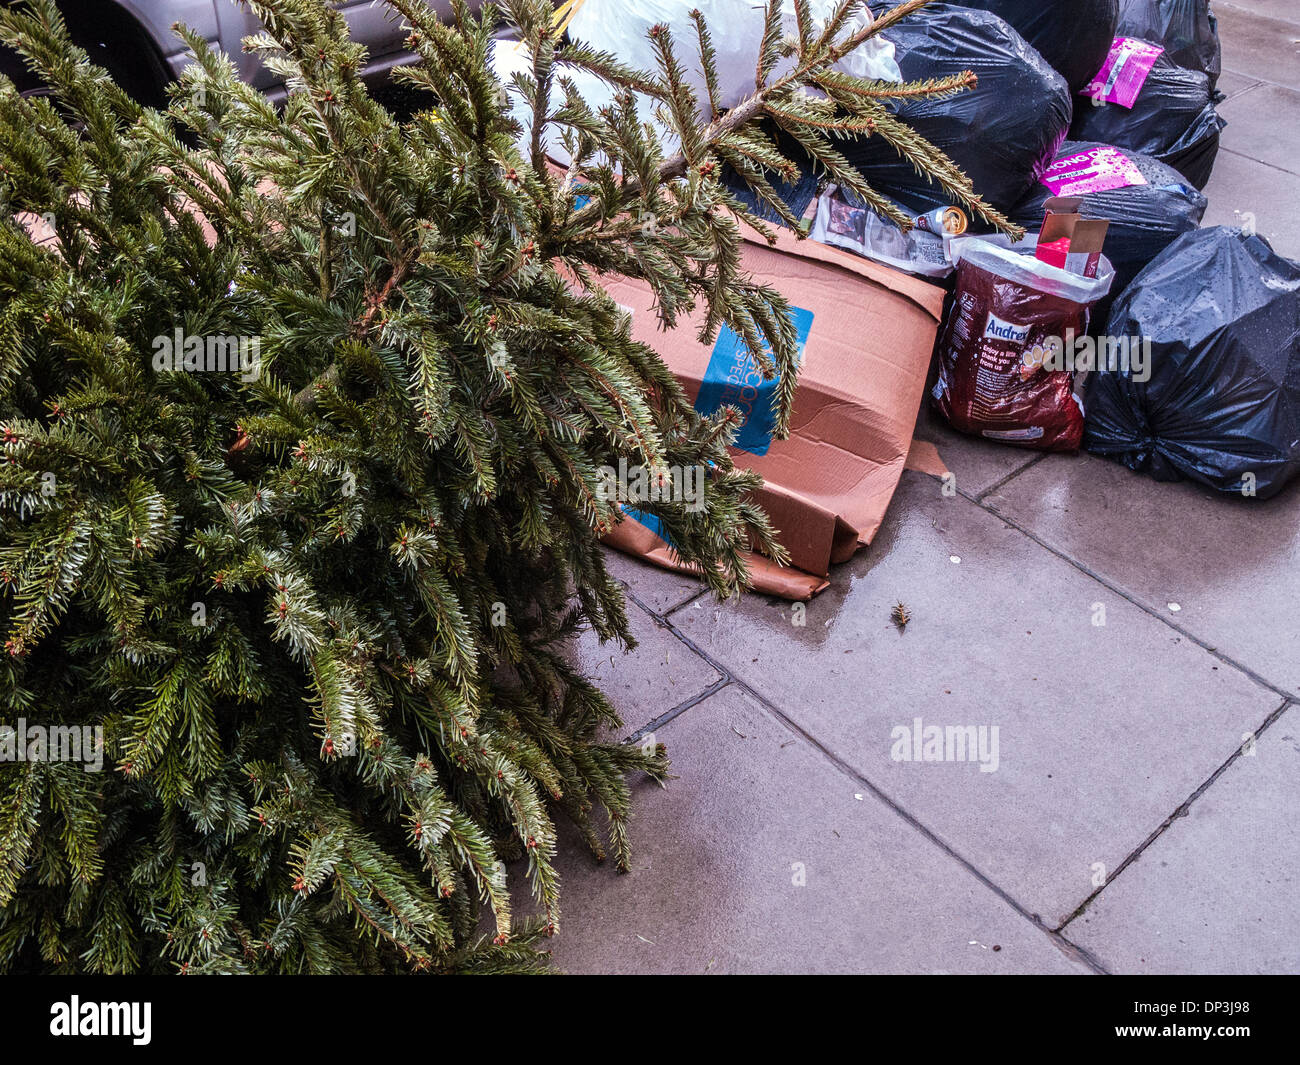 Christmas Tree Recycling and Refuse Collection - Stock Image